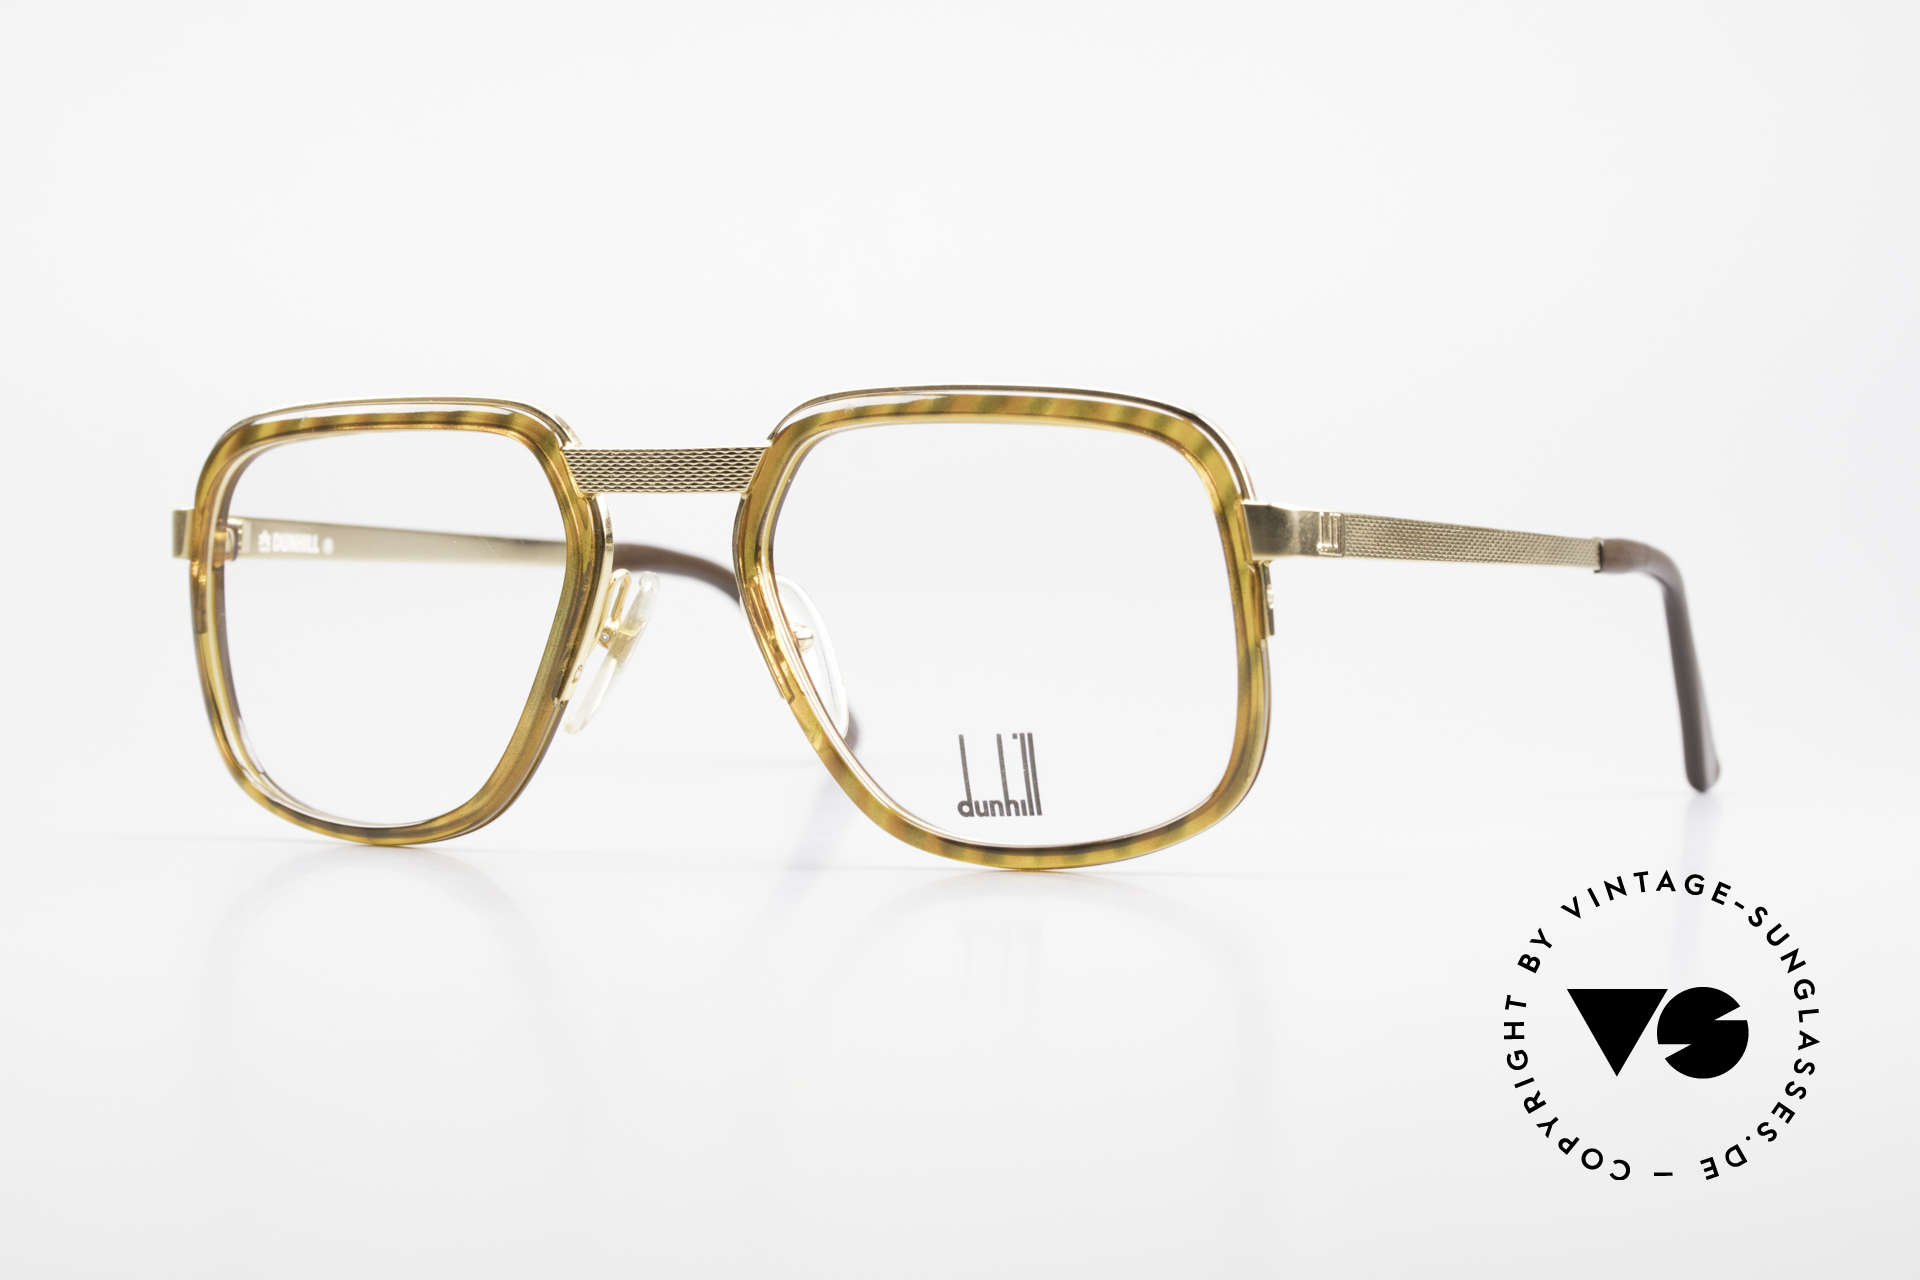 Dunhill 6073 Gold Plated 80's Glasses Men, well-known classiness by the Englisch noble brand, Made for Men